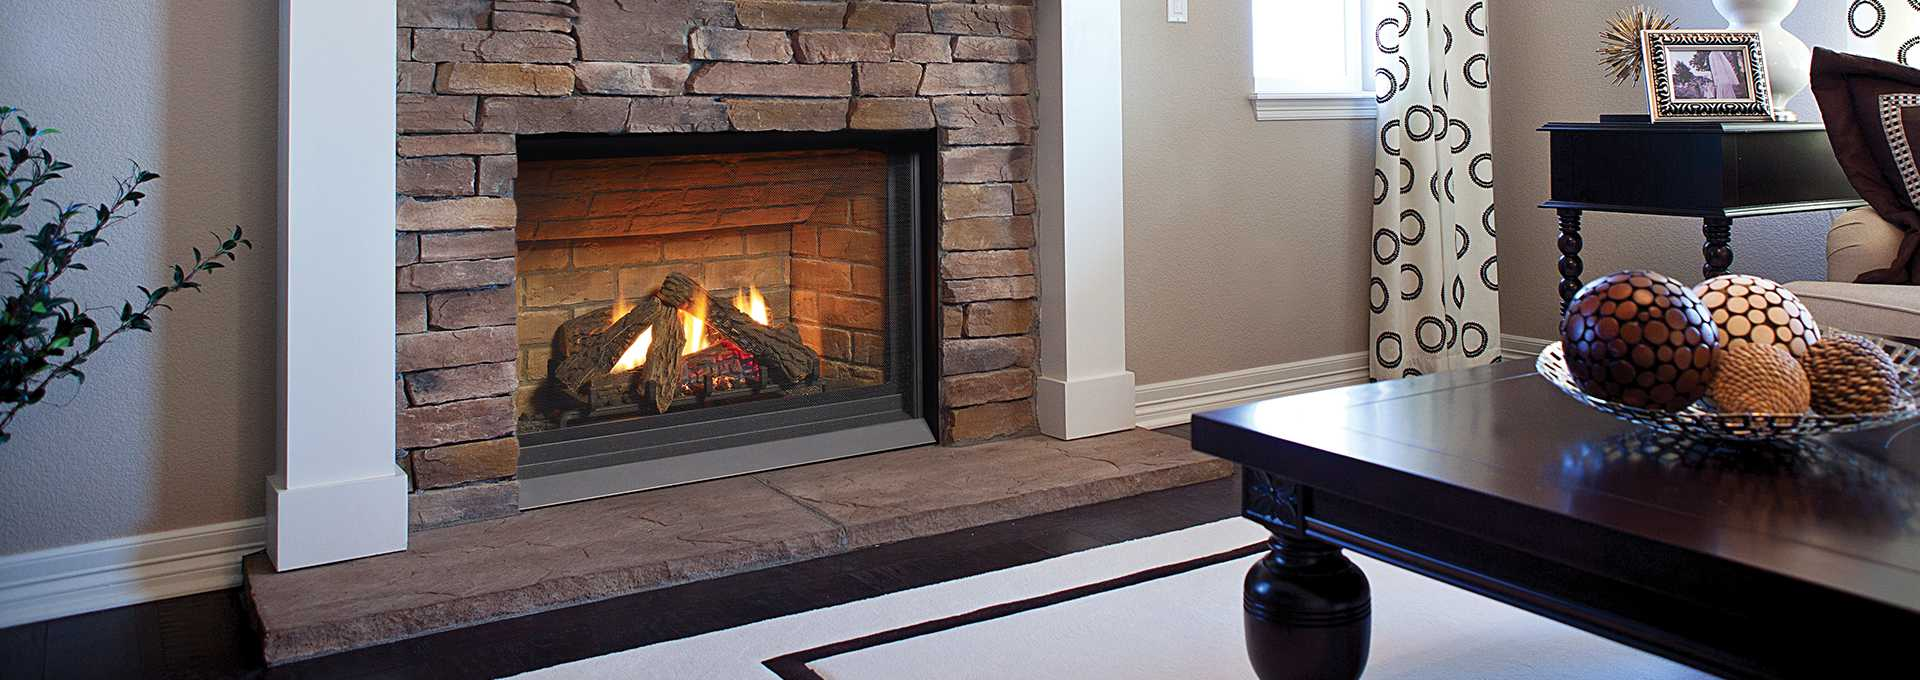 Compact Gas Fireplace Panorama P33ce Regency Fireplace Products